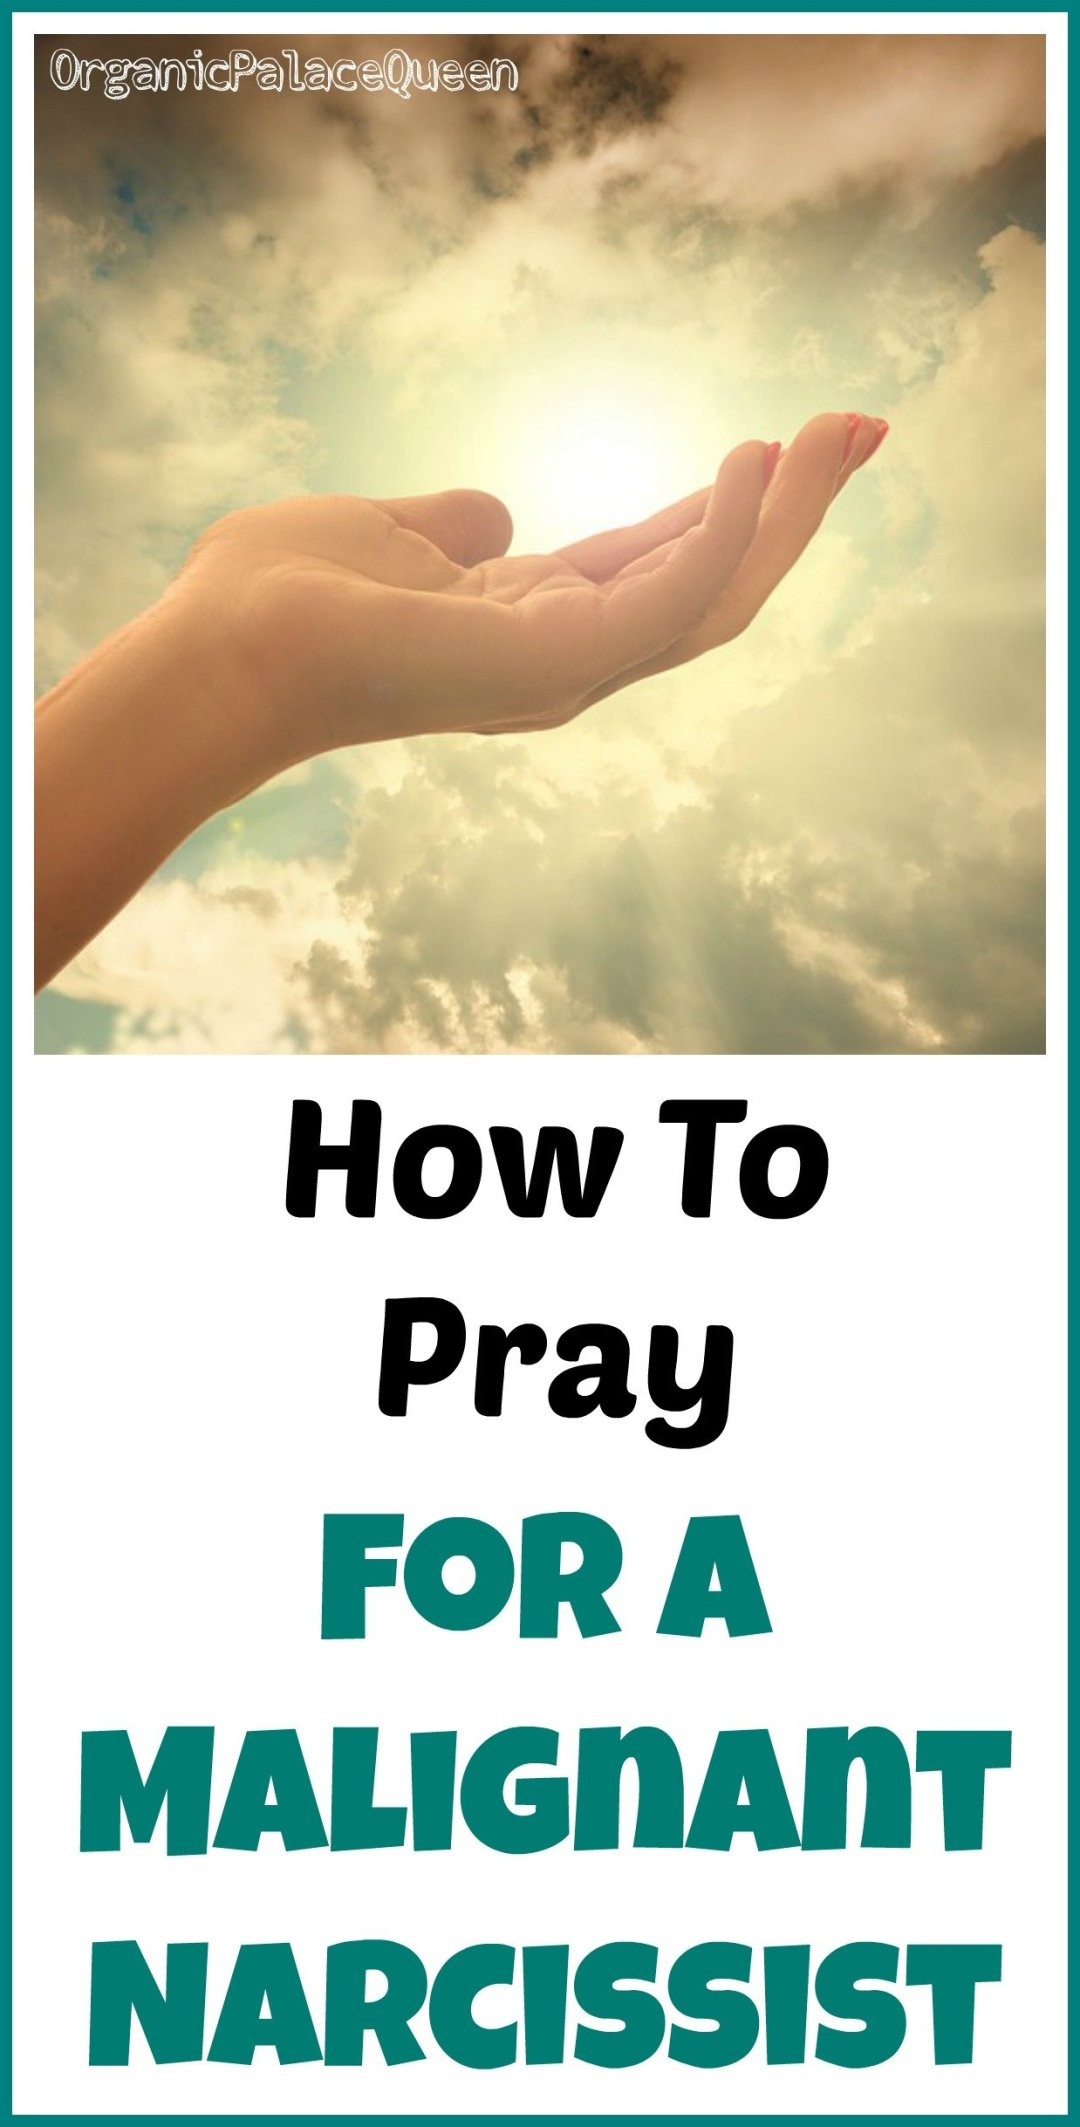 How to pray for a narcissist